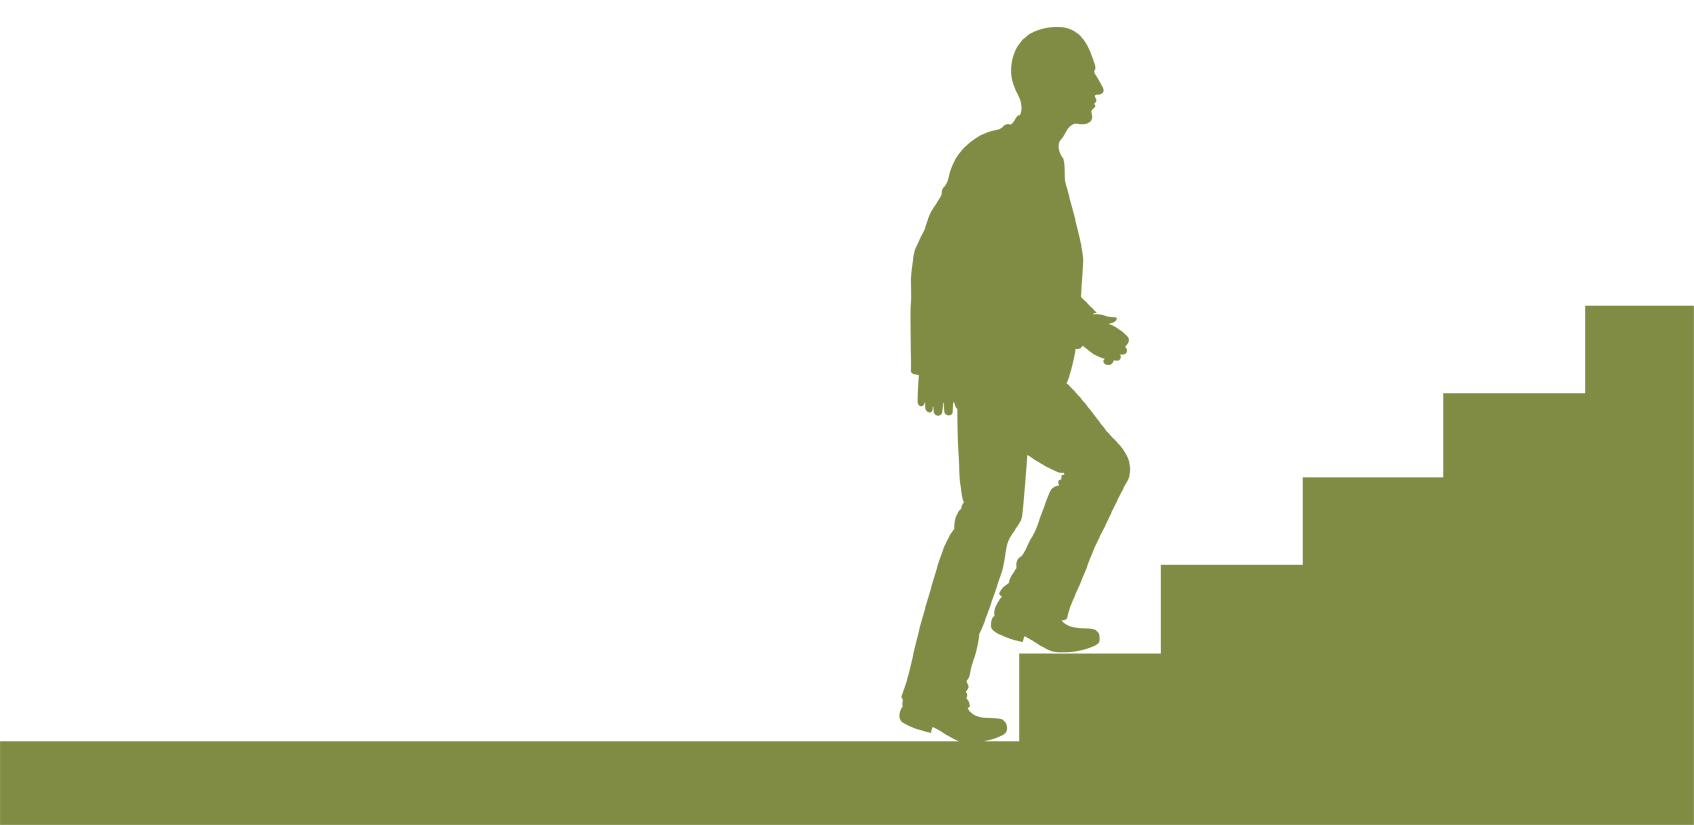 Walking stairs png silhouette. Up at getdrawings com